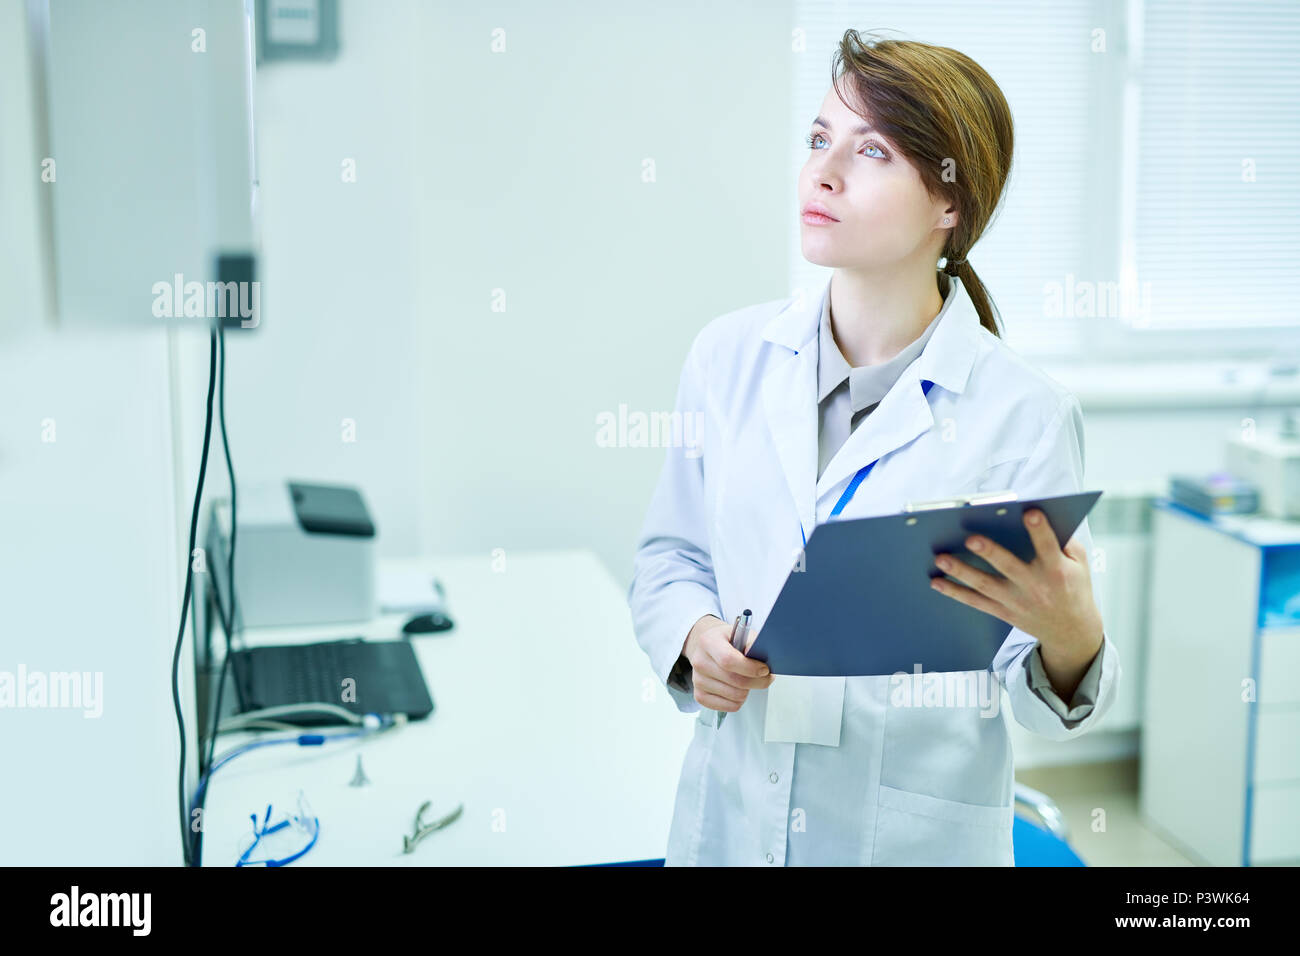 Doctor standing with clipboard and looking at something - Stock Image